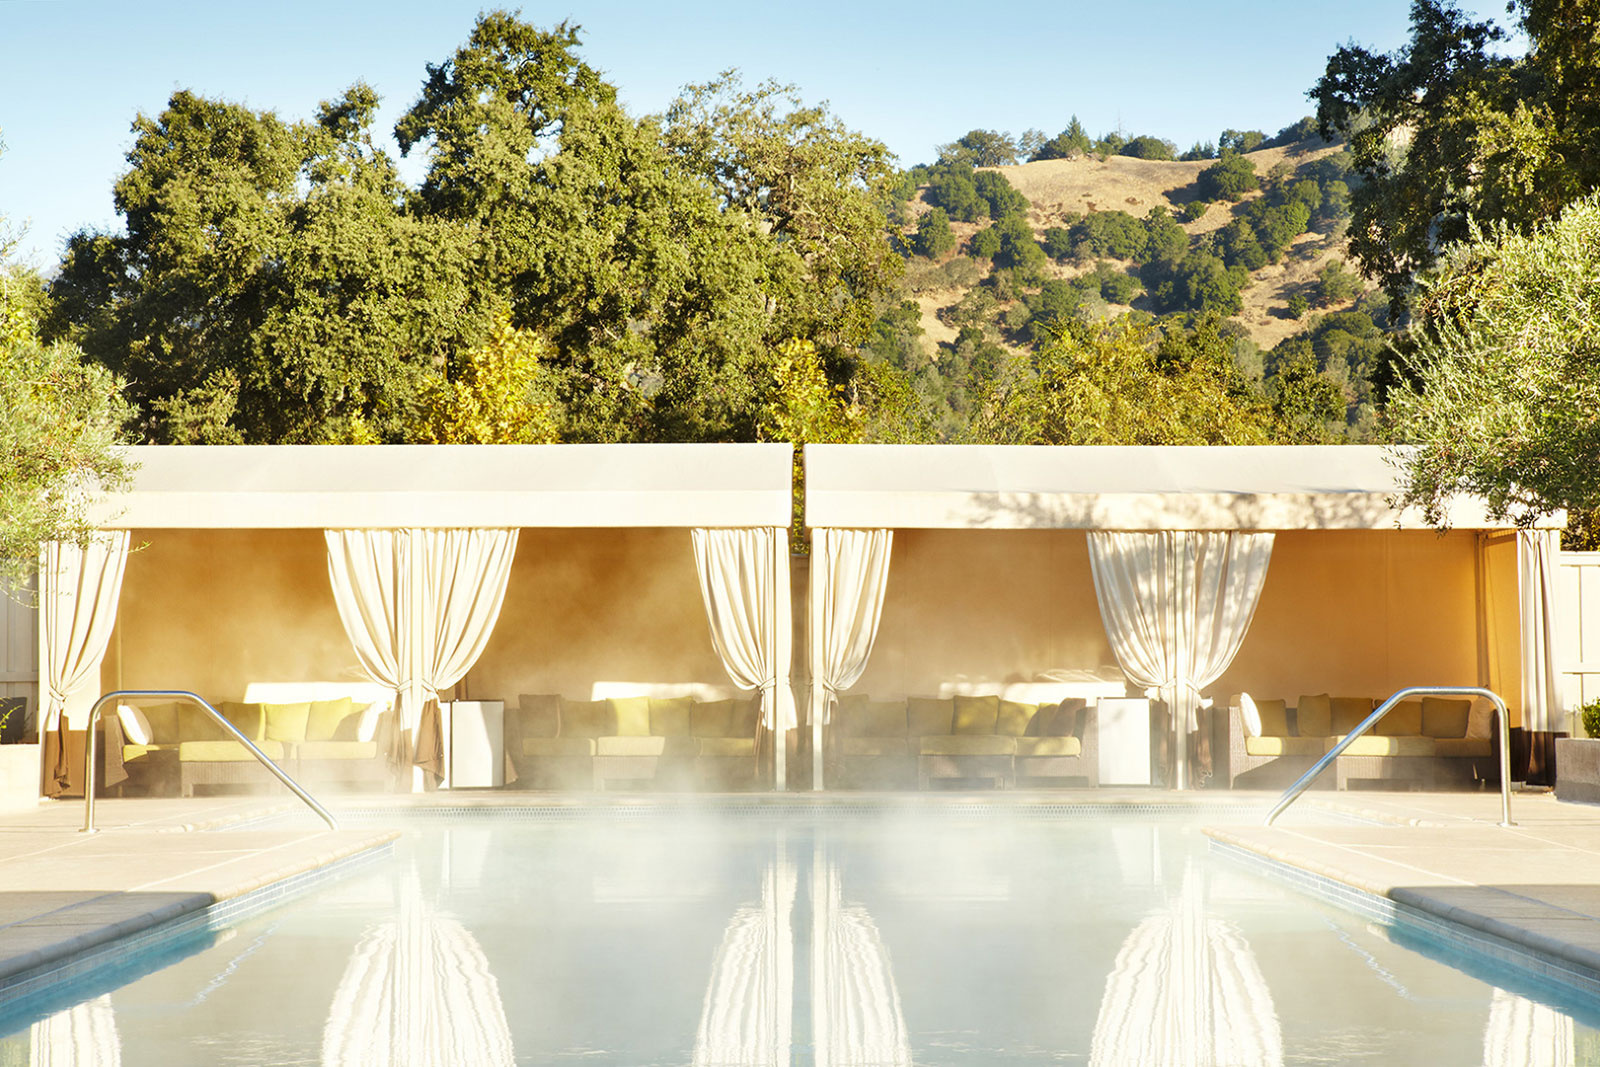 Spa pool at Solage Calistoga, Napa, CA  | Trinette+Chris Photographers